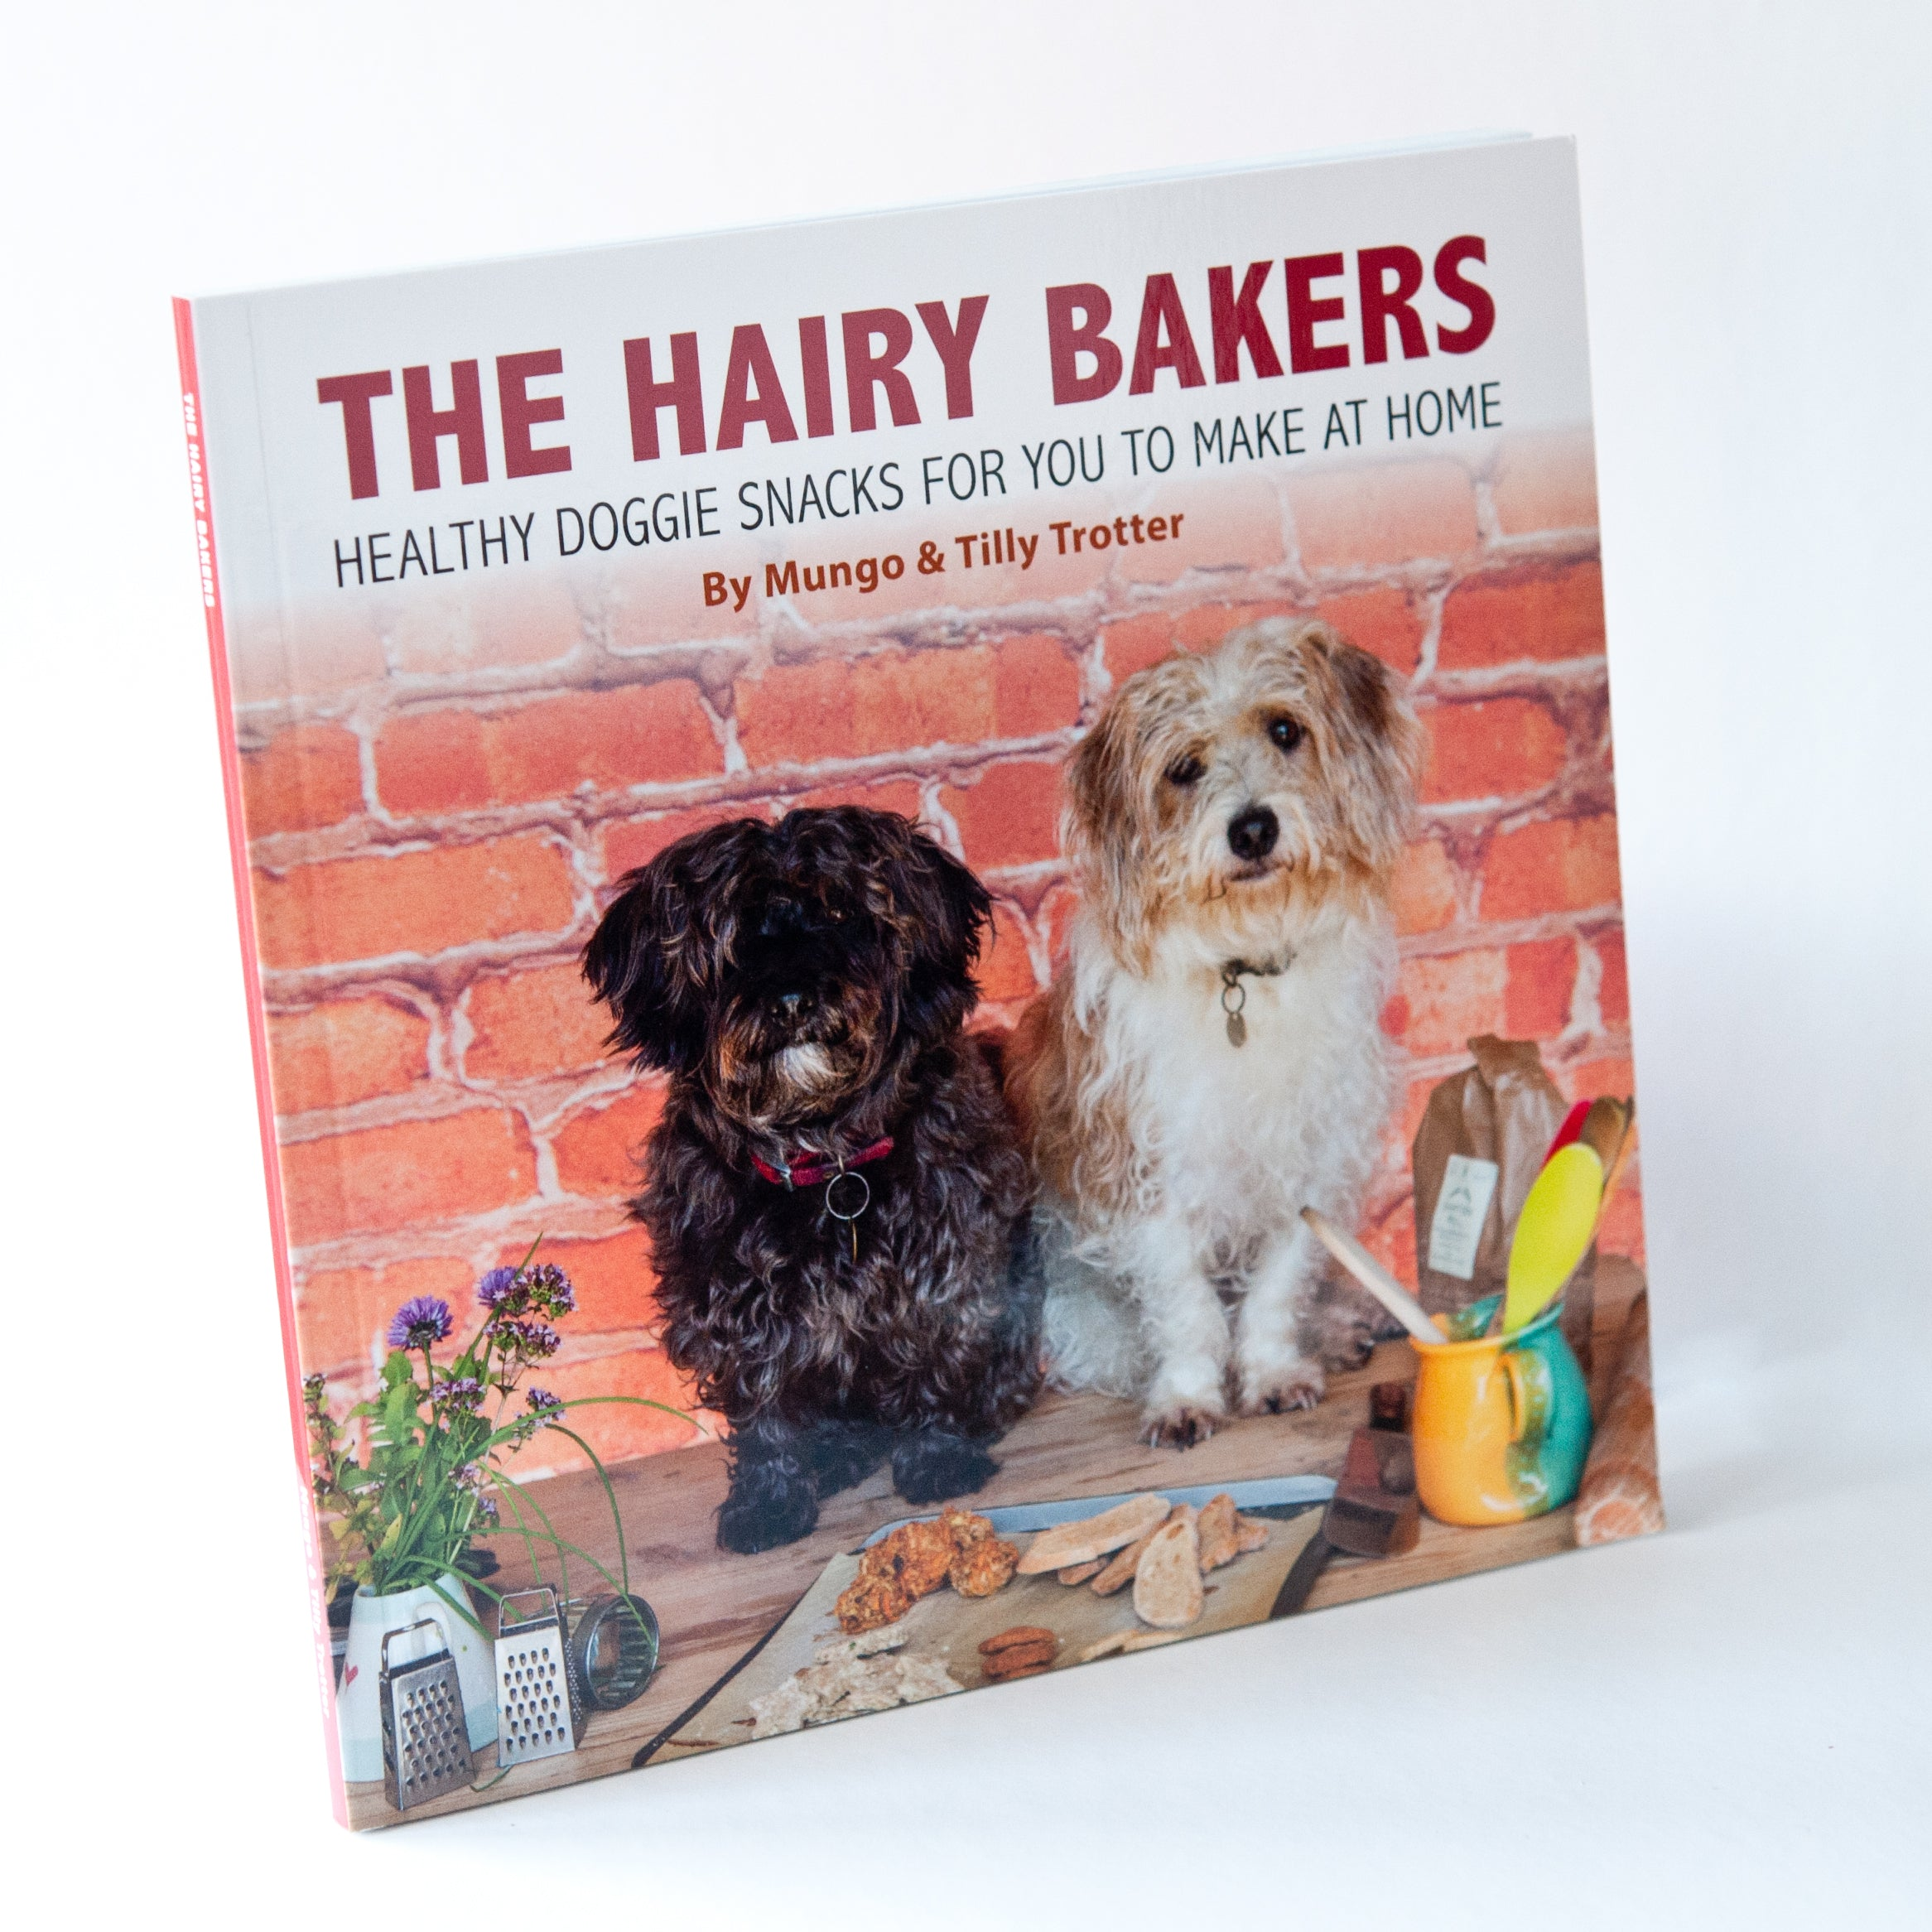 The hairy bakers healthy doggie snacks recipe book funky food gifts the hairy bakers dog treat recipe book forumfinder Image collections